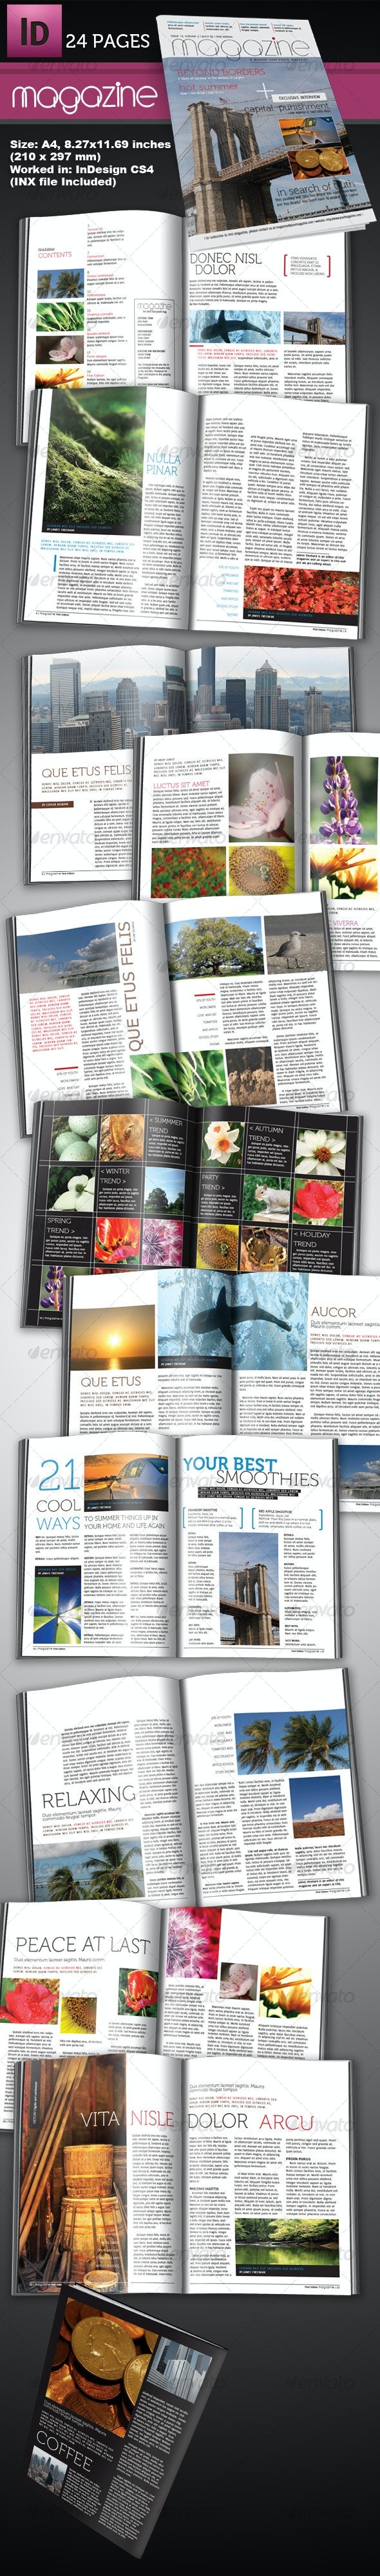 24 Page InDesign Magazine A4 - Magazines Print Templates